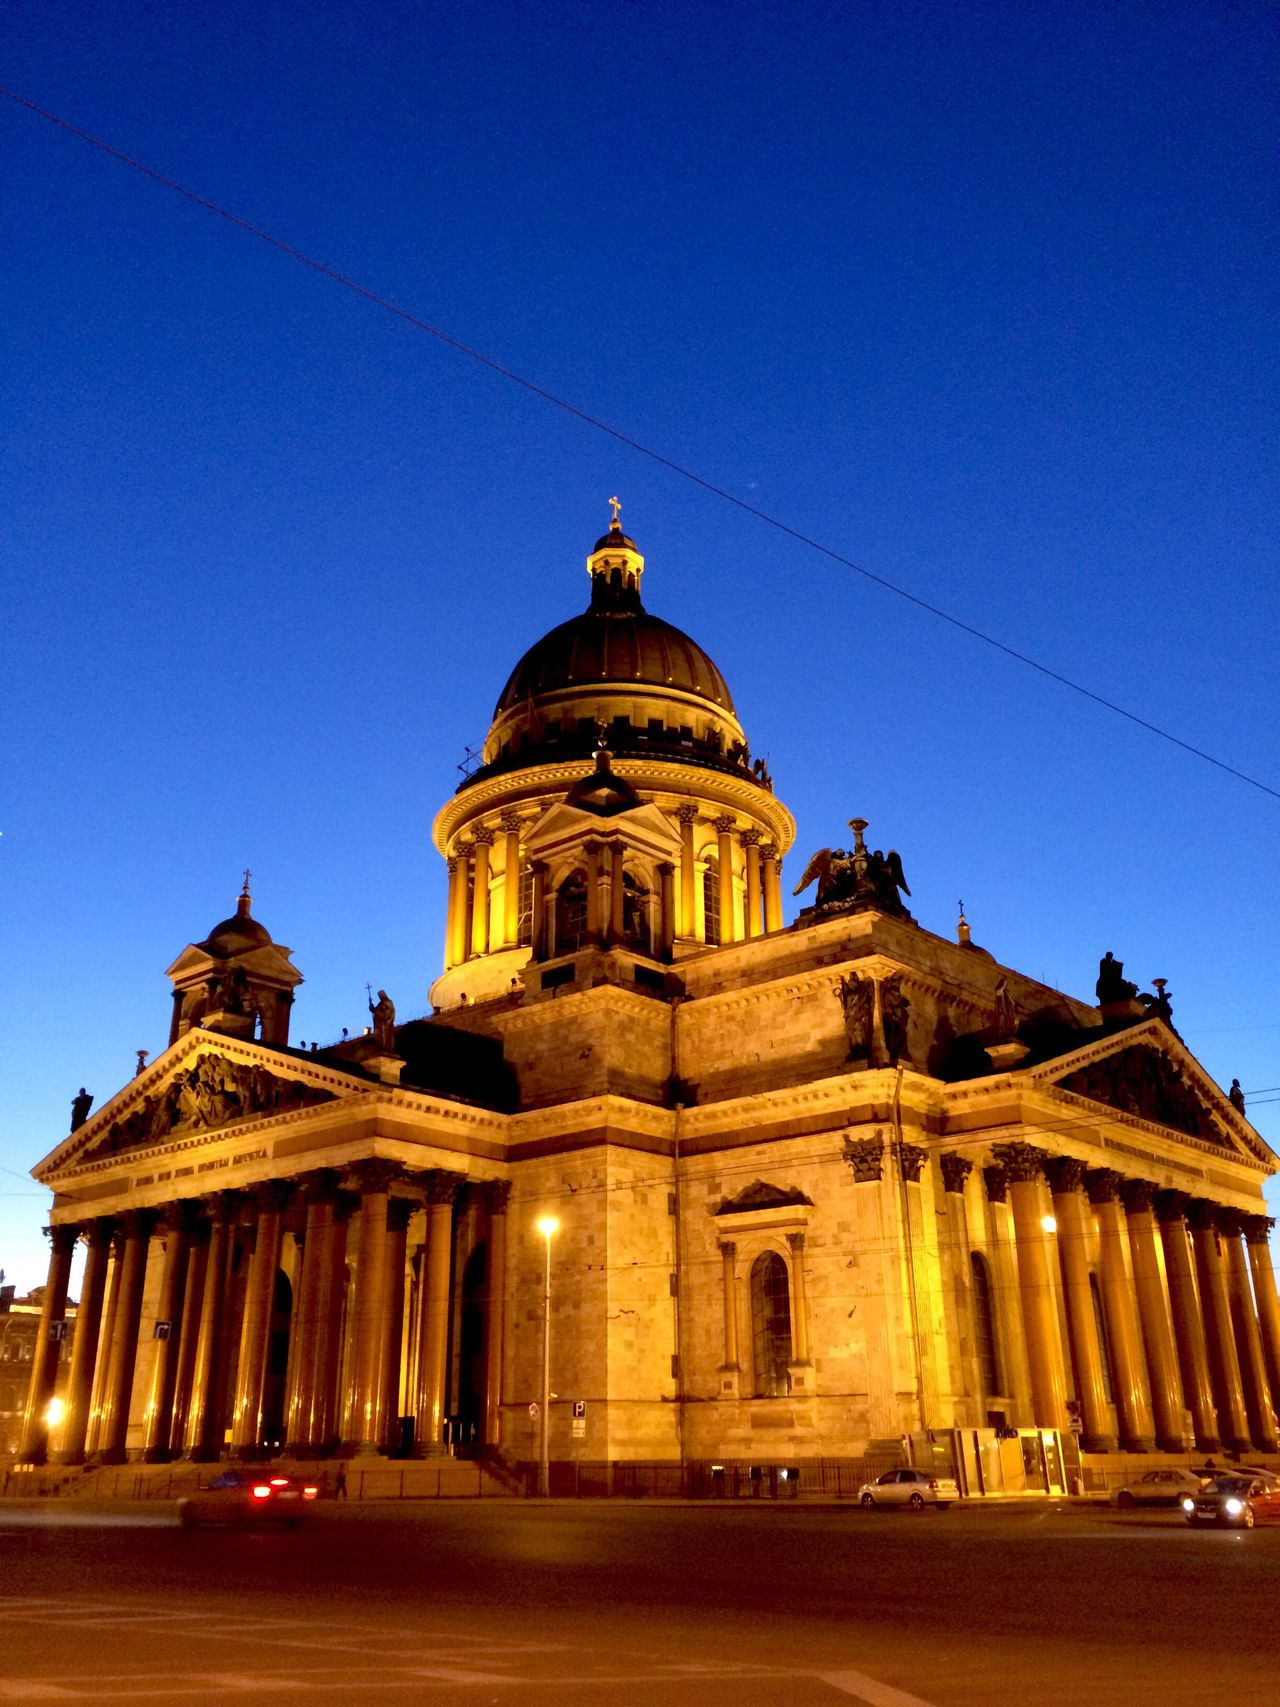 Overnight Success Saint Isaac's Cathedral